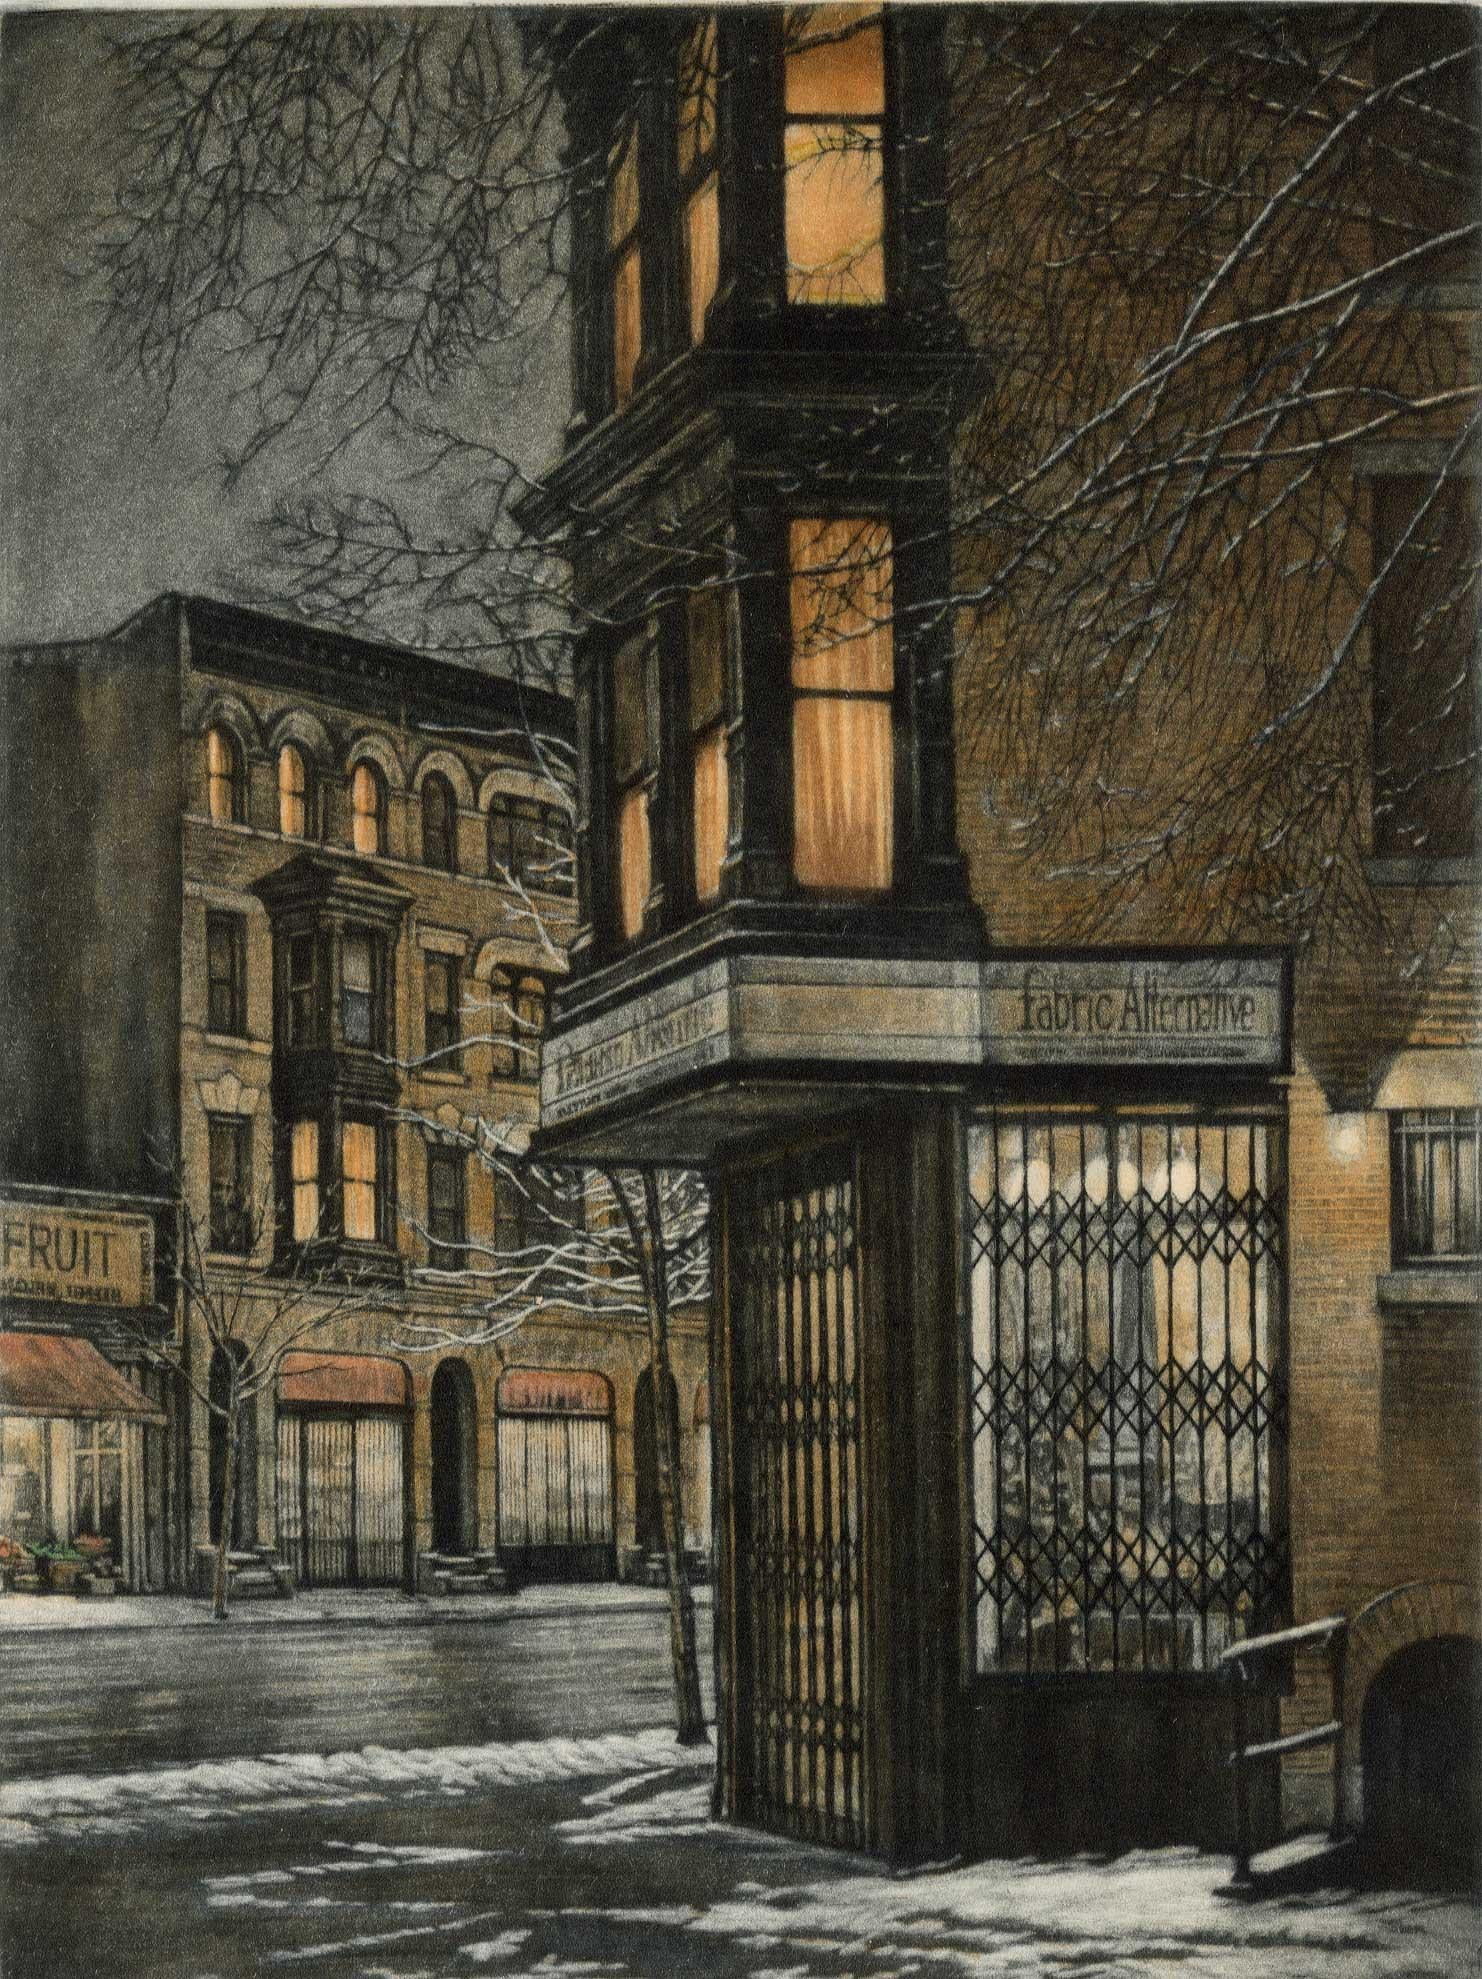 Late Night (Where Berkeley Place meets Seventh Avenue in Brooklyn's Park Slope)